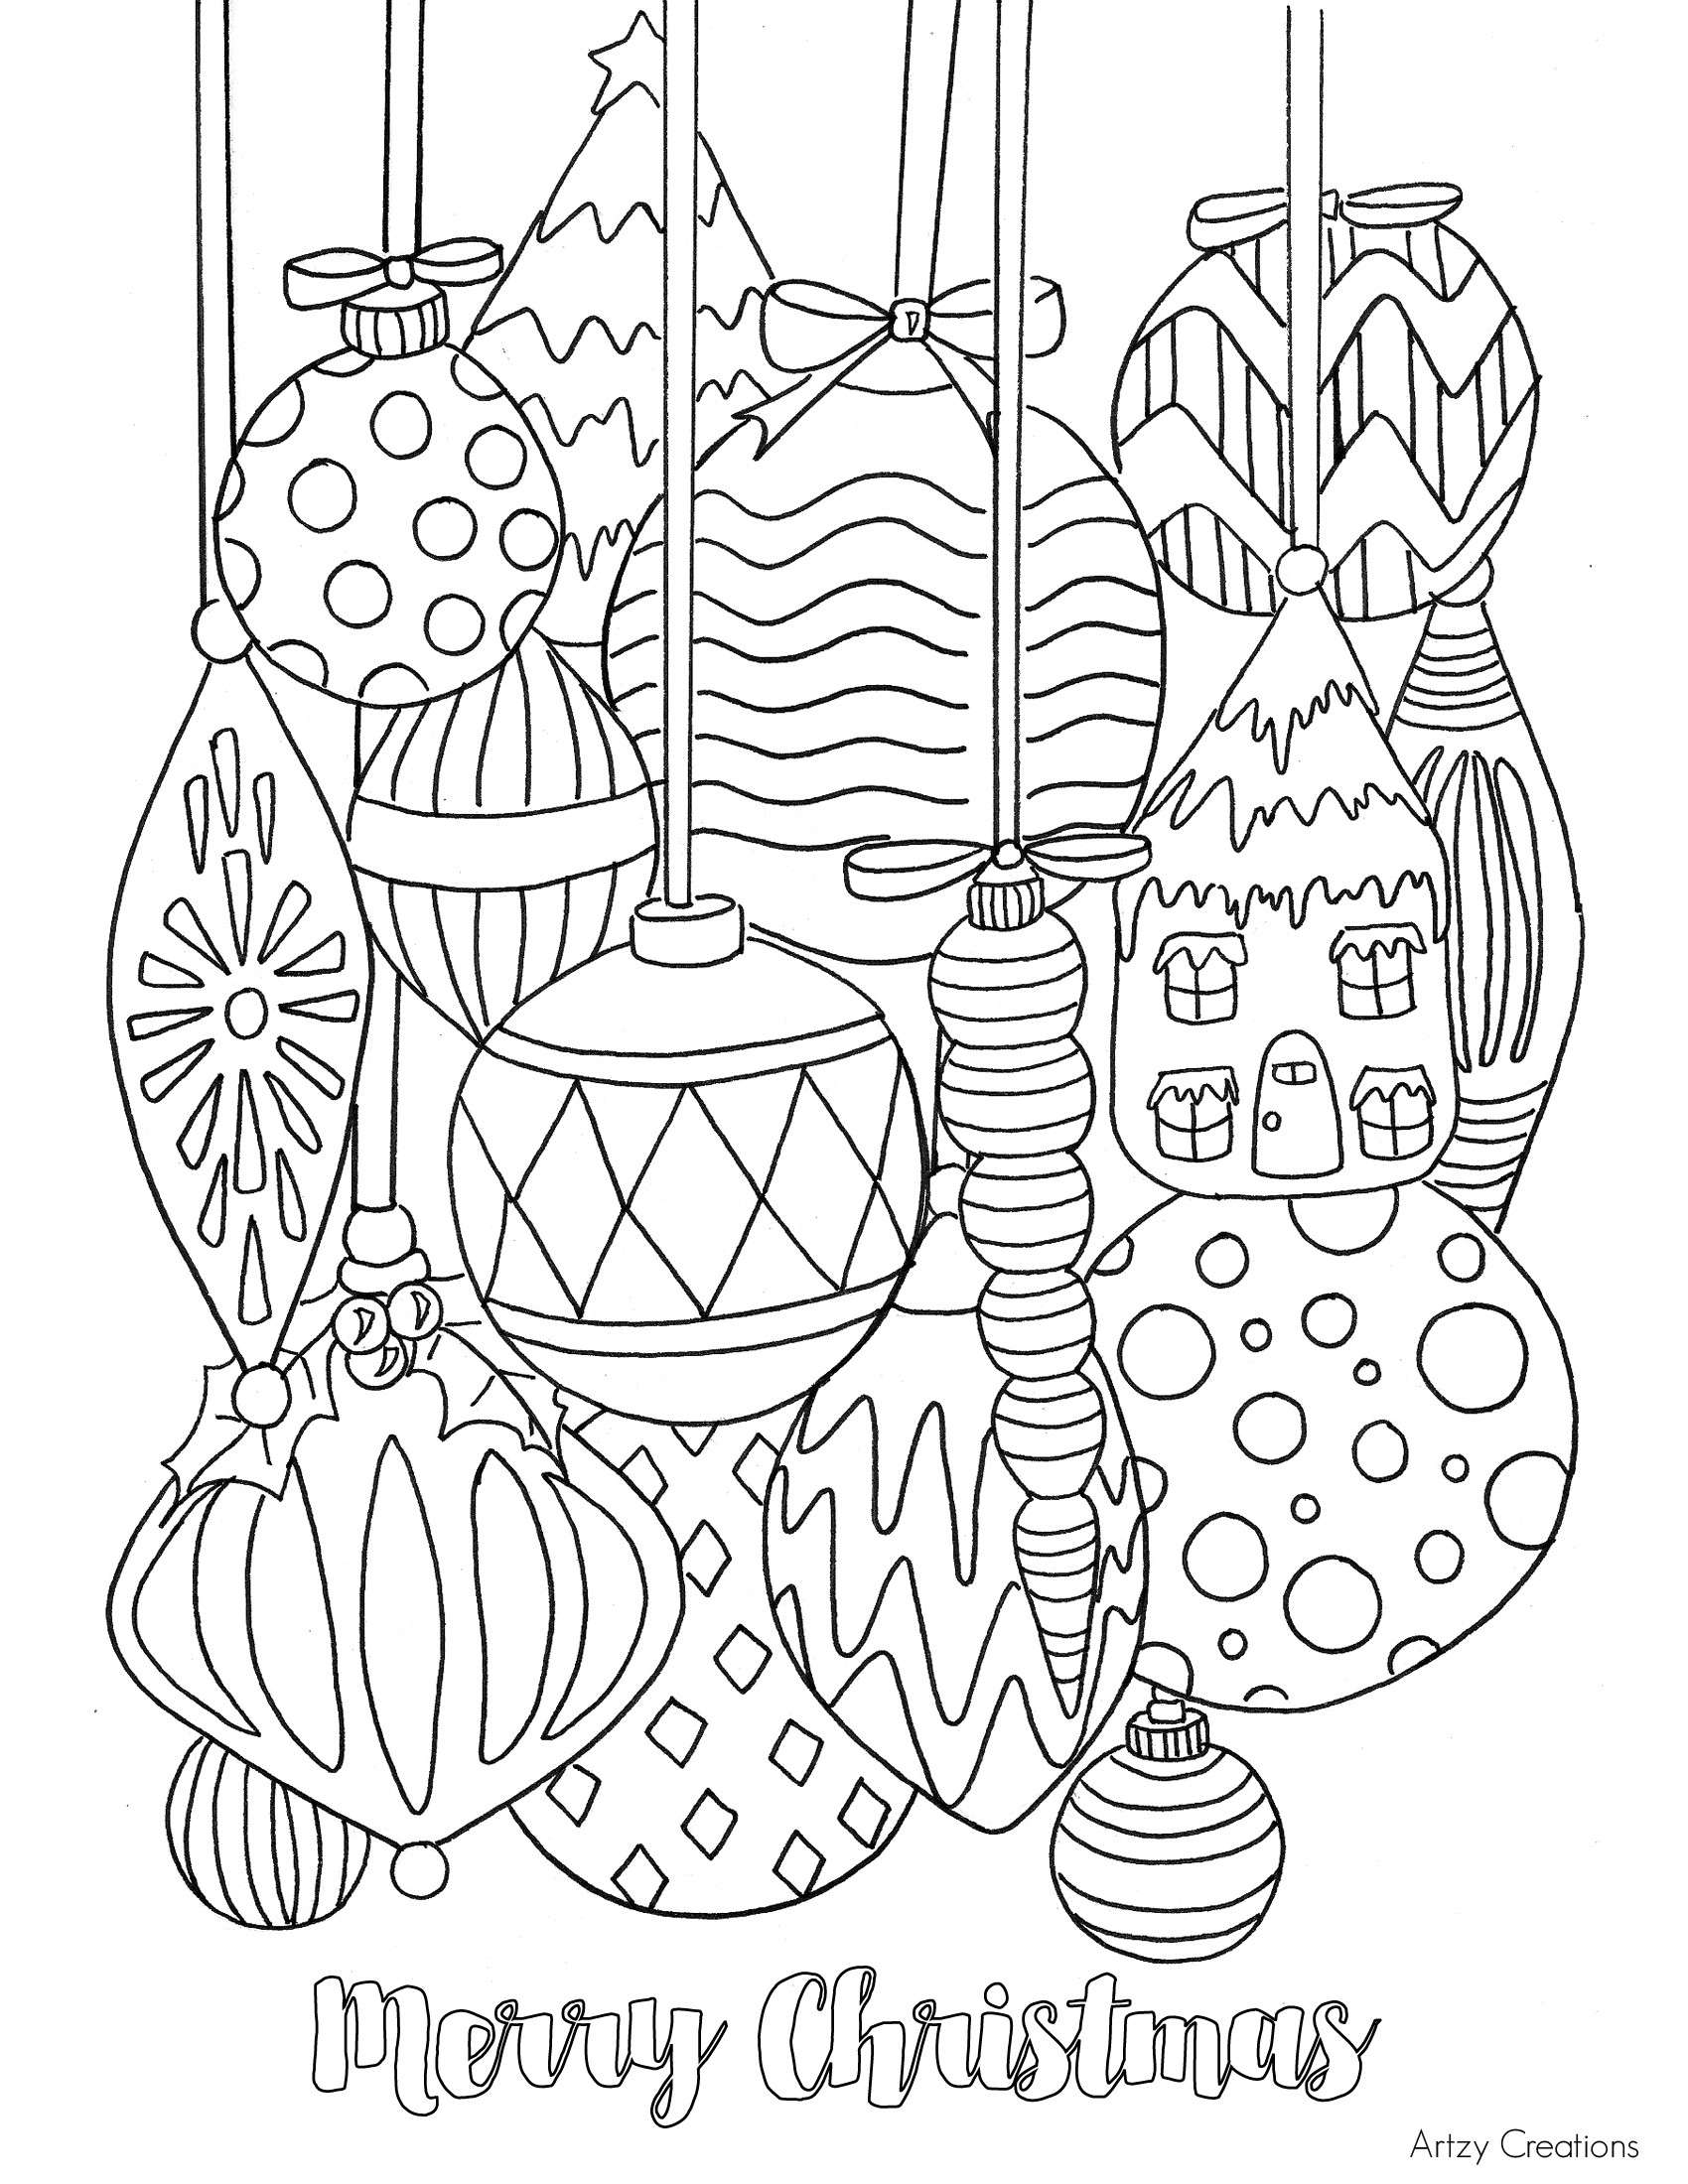 Christmas Coloring Card With Pages Printable Preschool